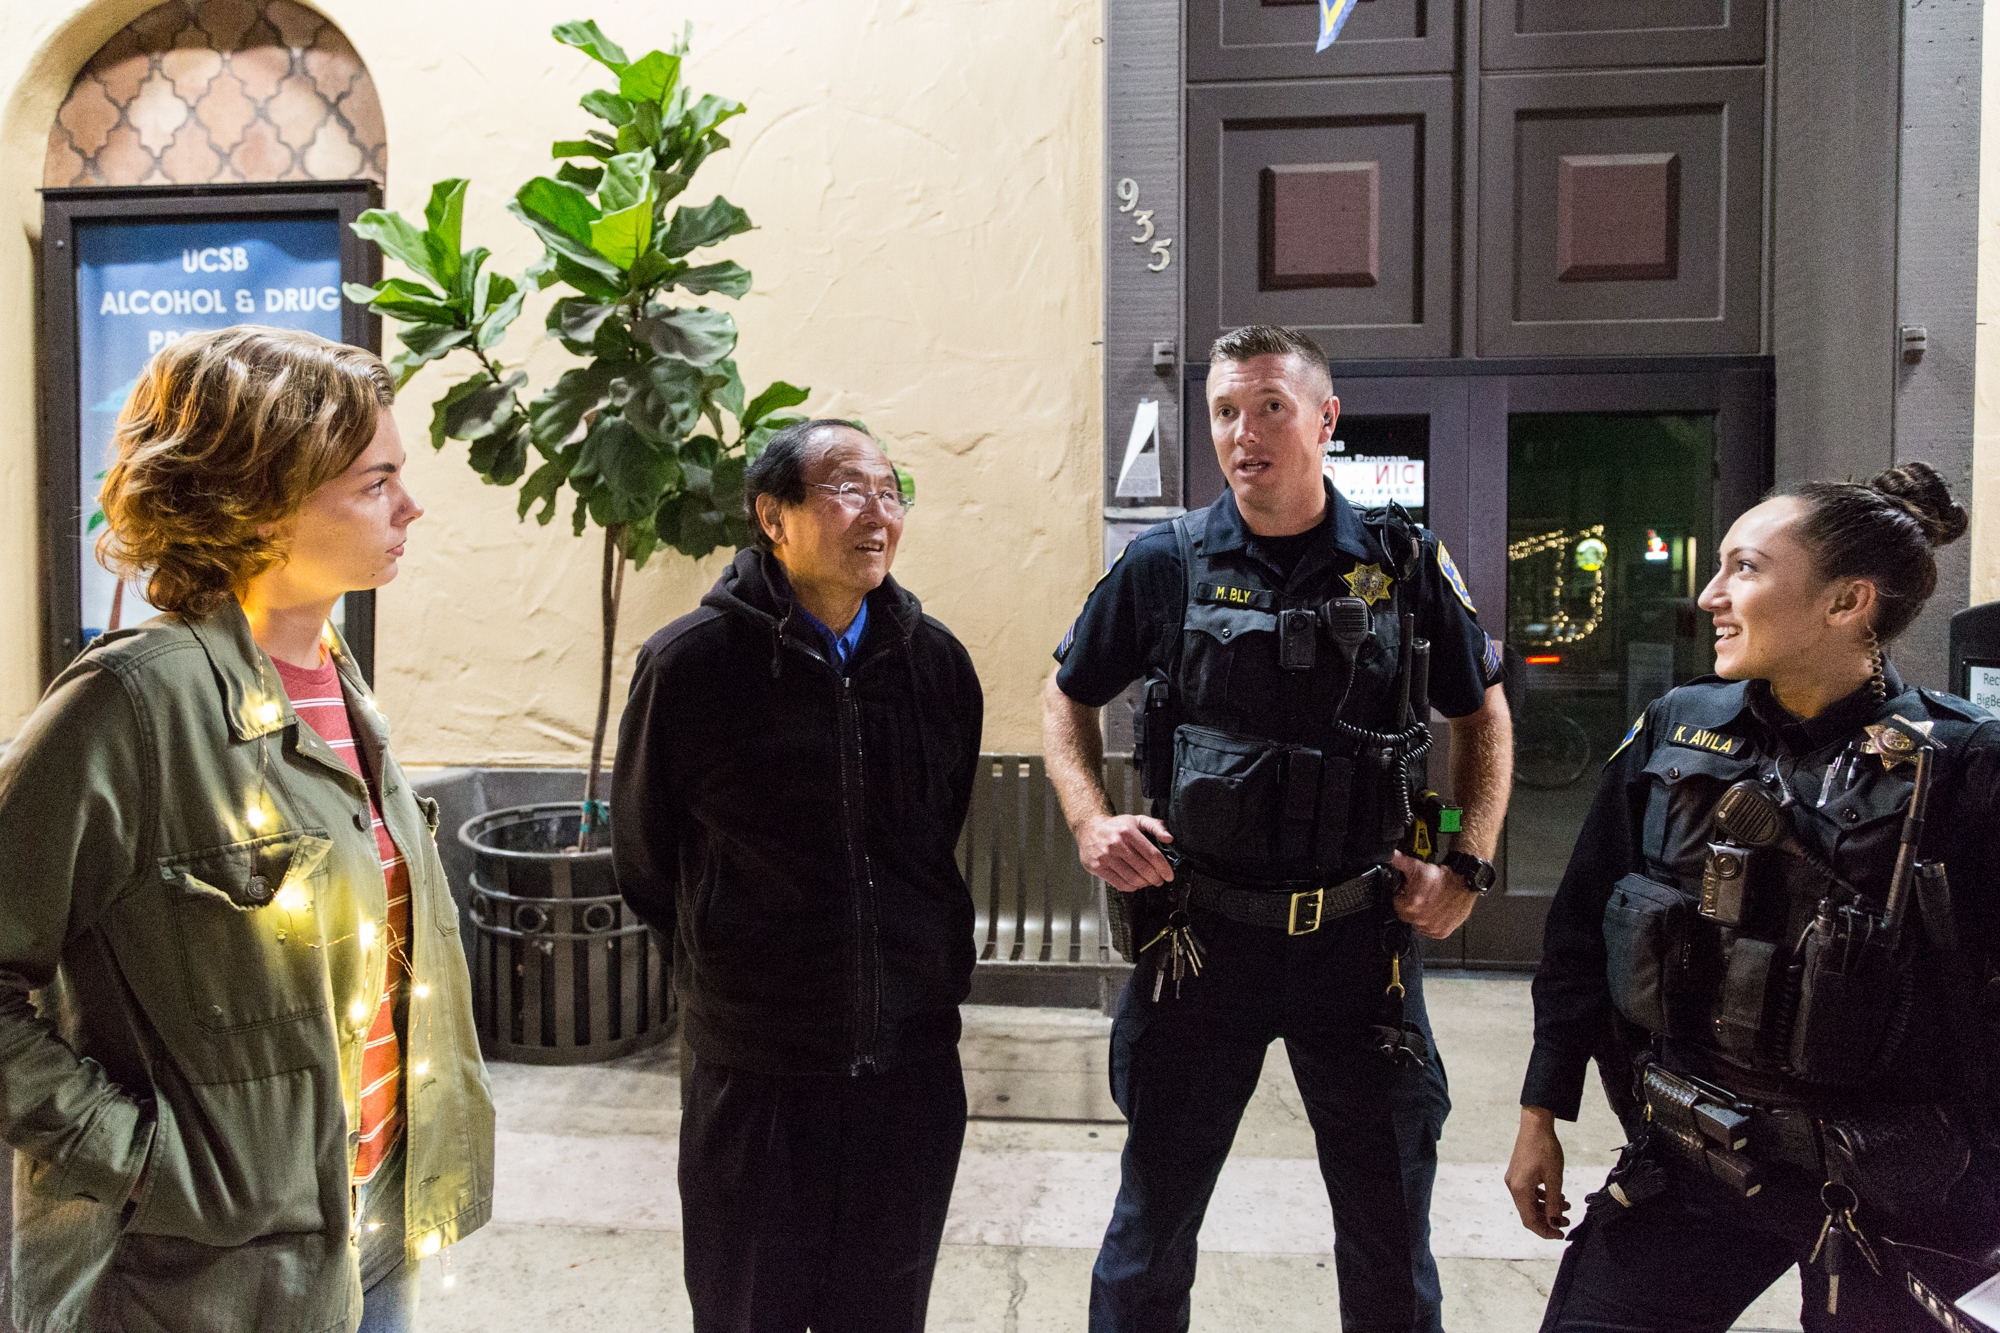 Daily Nexus EIC Megan Mineiro and Chancellor Yang stop and talk with some UCPD officers on patrol. Officer Bly reminiced about his time as a student in Isla Vista. Dustin Harris / Daily Nexus